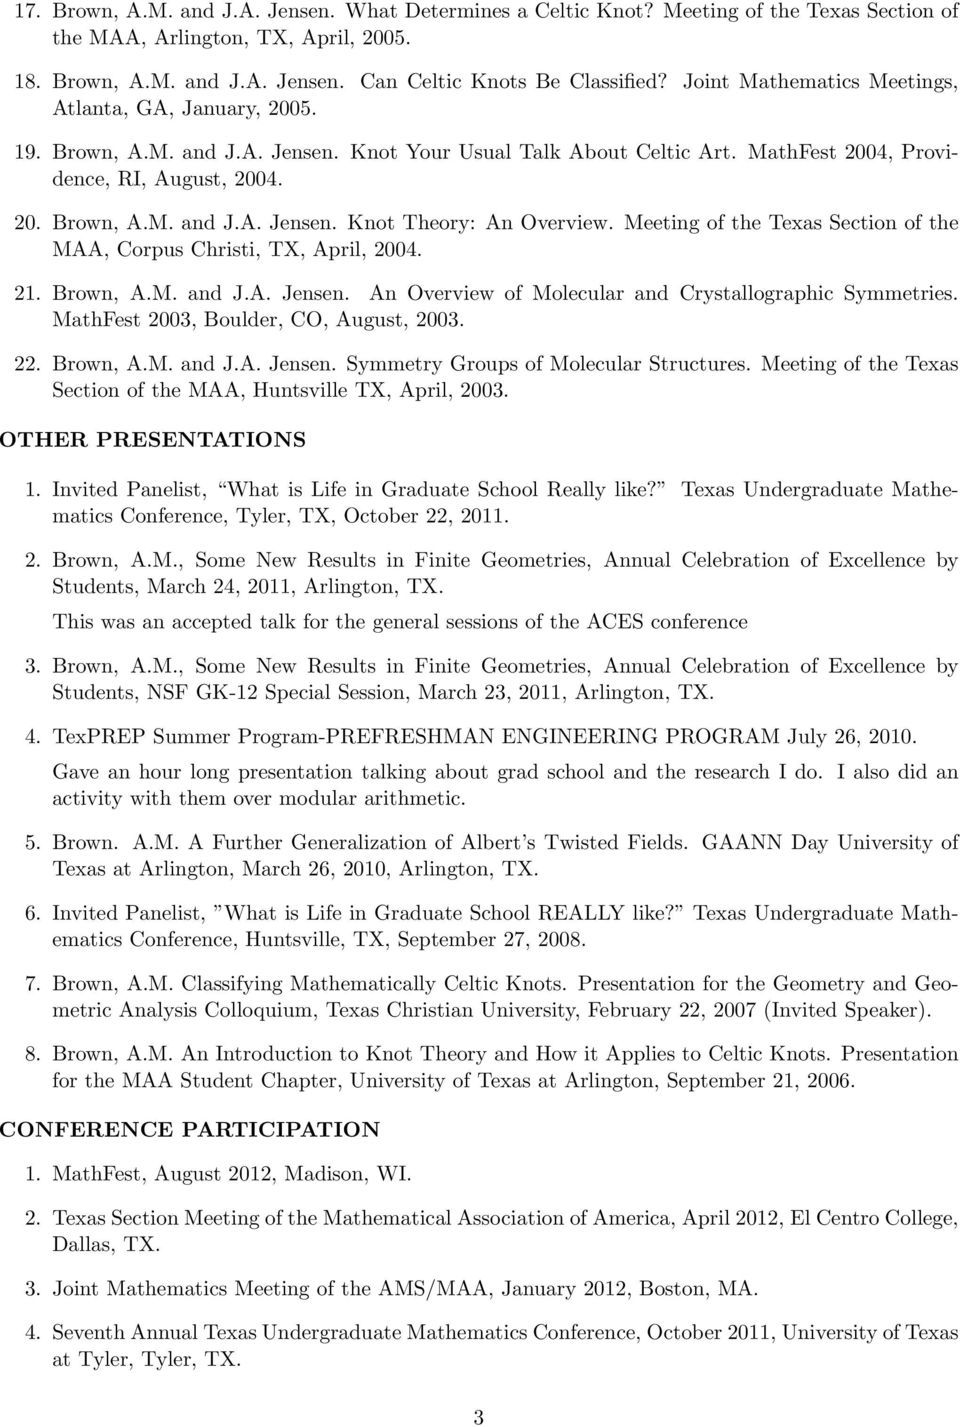 Meeting of the Texas Section of the MAA, Corpus Christi, TX, April, 2004. 21. Brown, A.M. and J.A. Jensen. An Overview of Molecular and Crystallographic Symmetries.